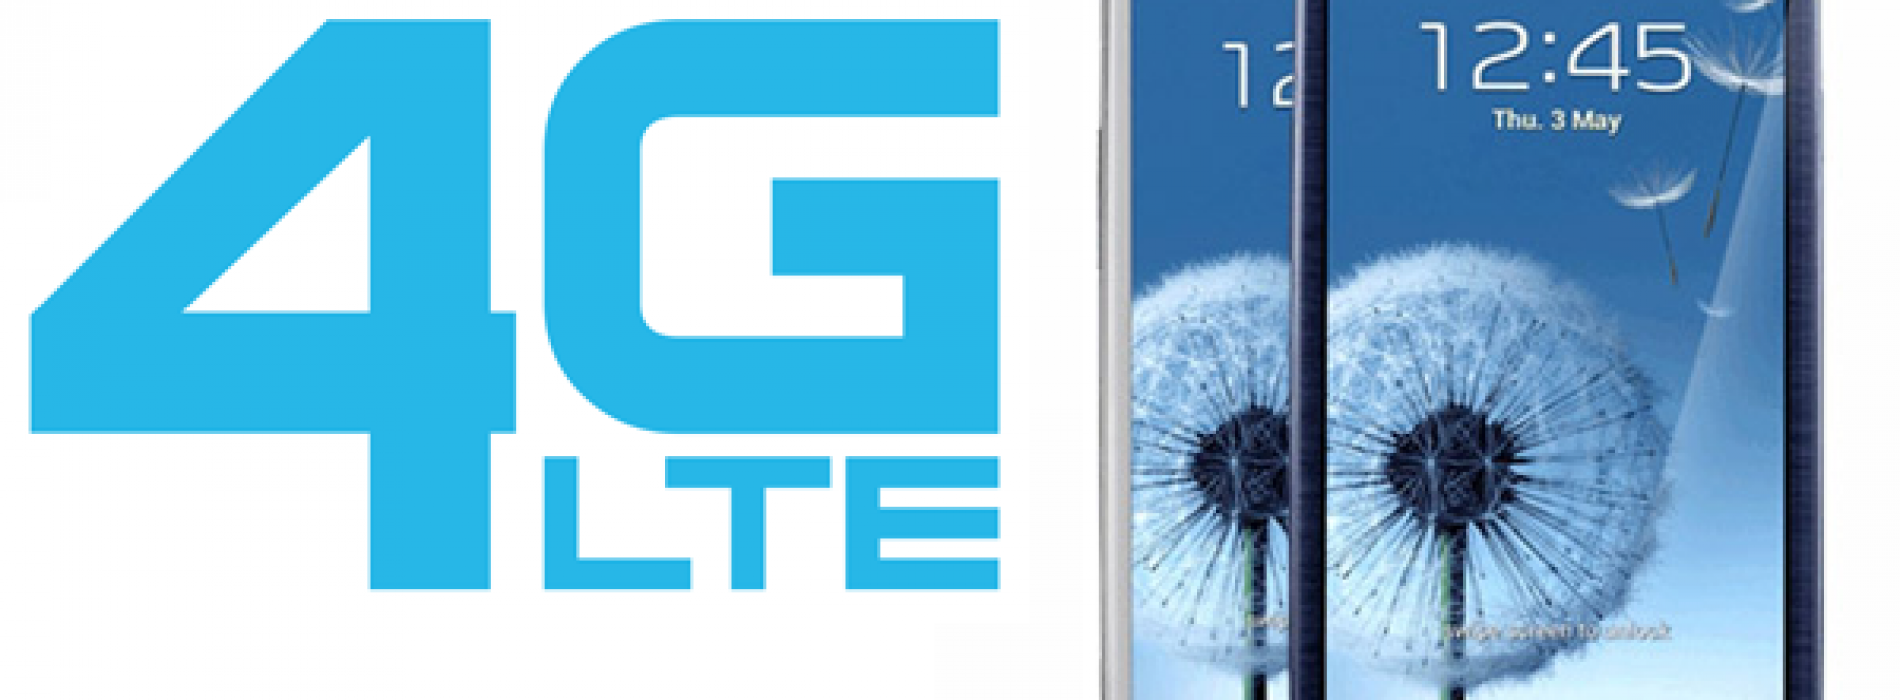 C Spire Wireless announces Galaxy S III as first 4G LTE handset